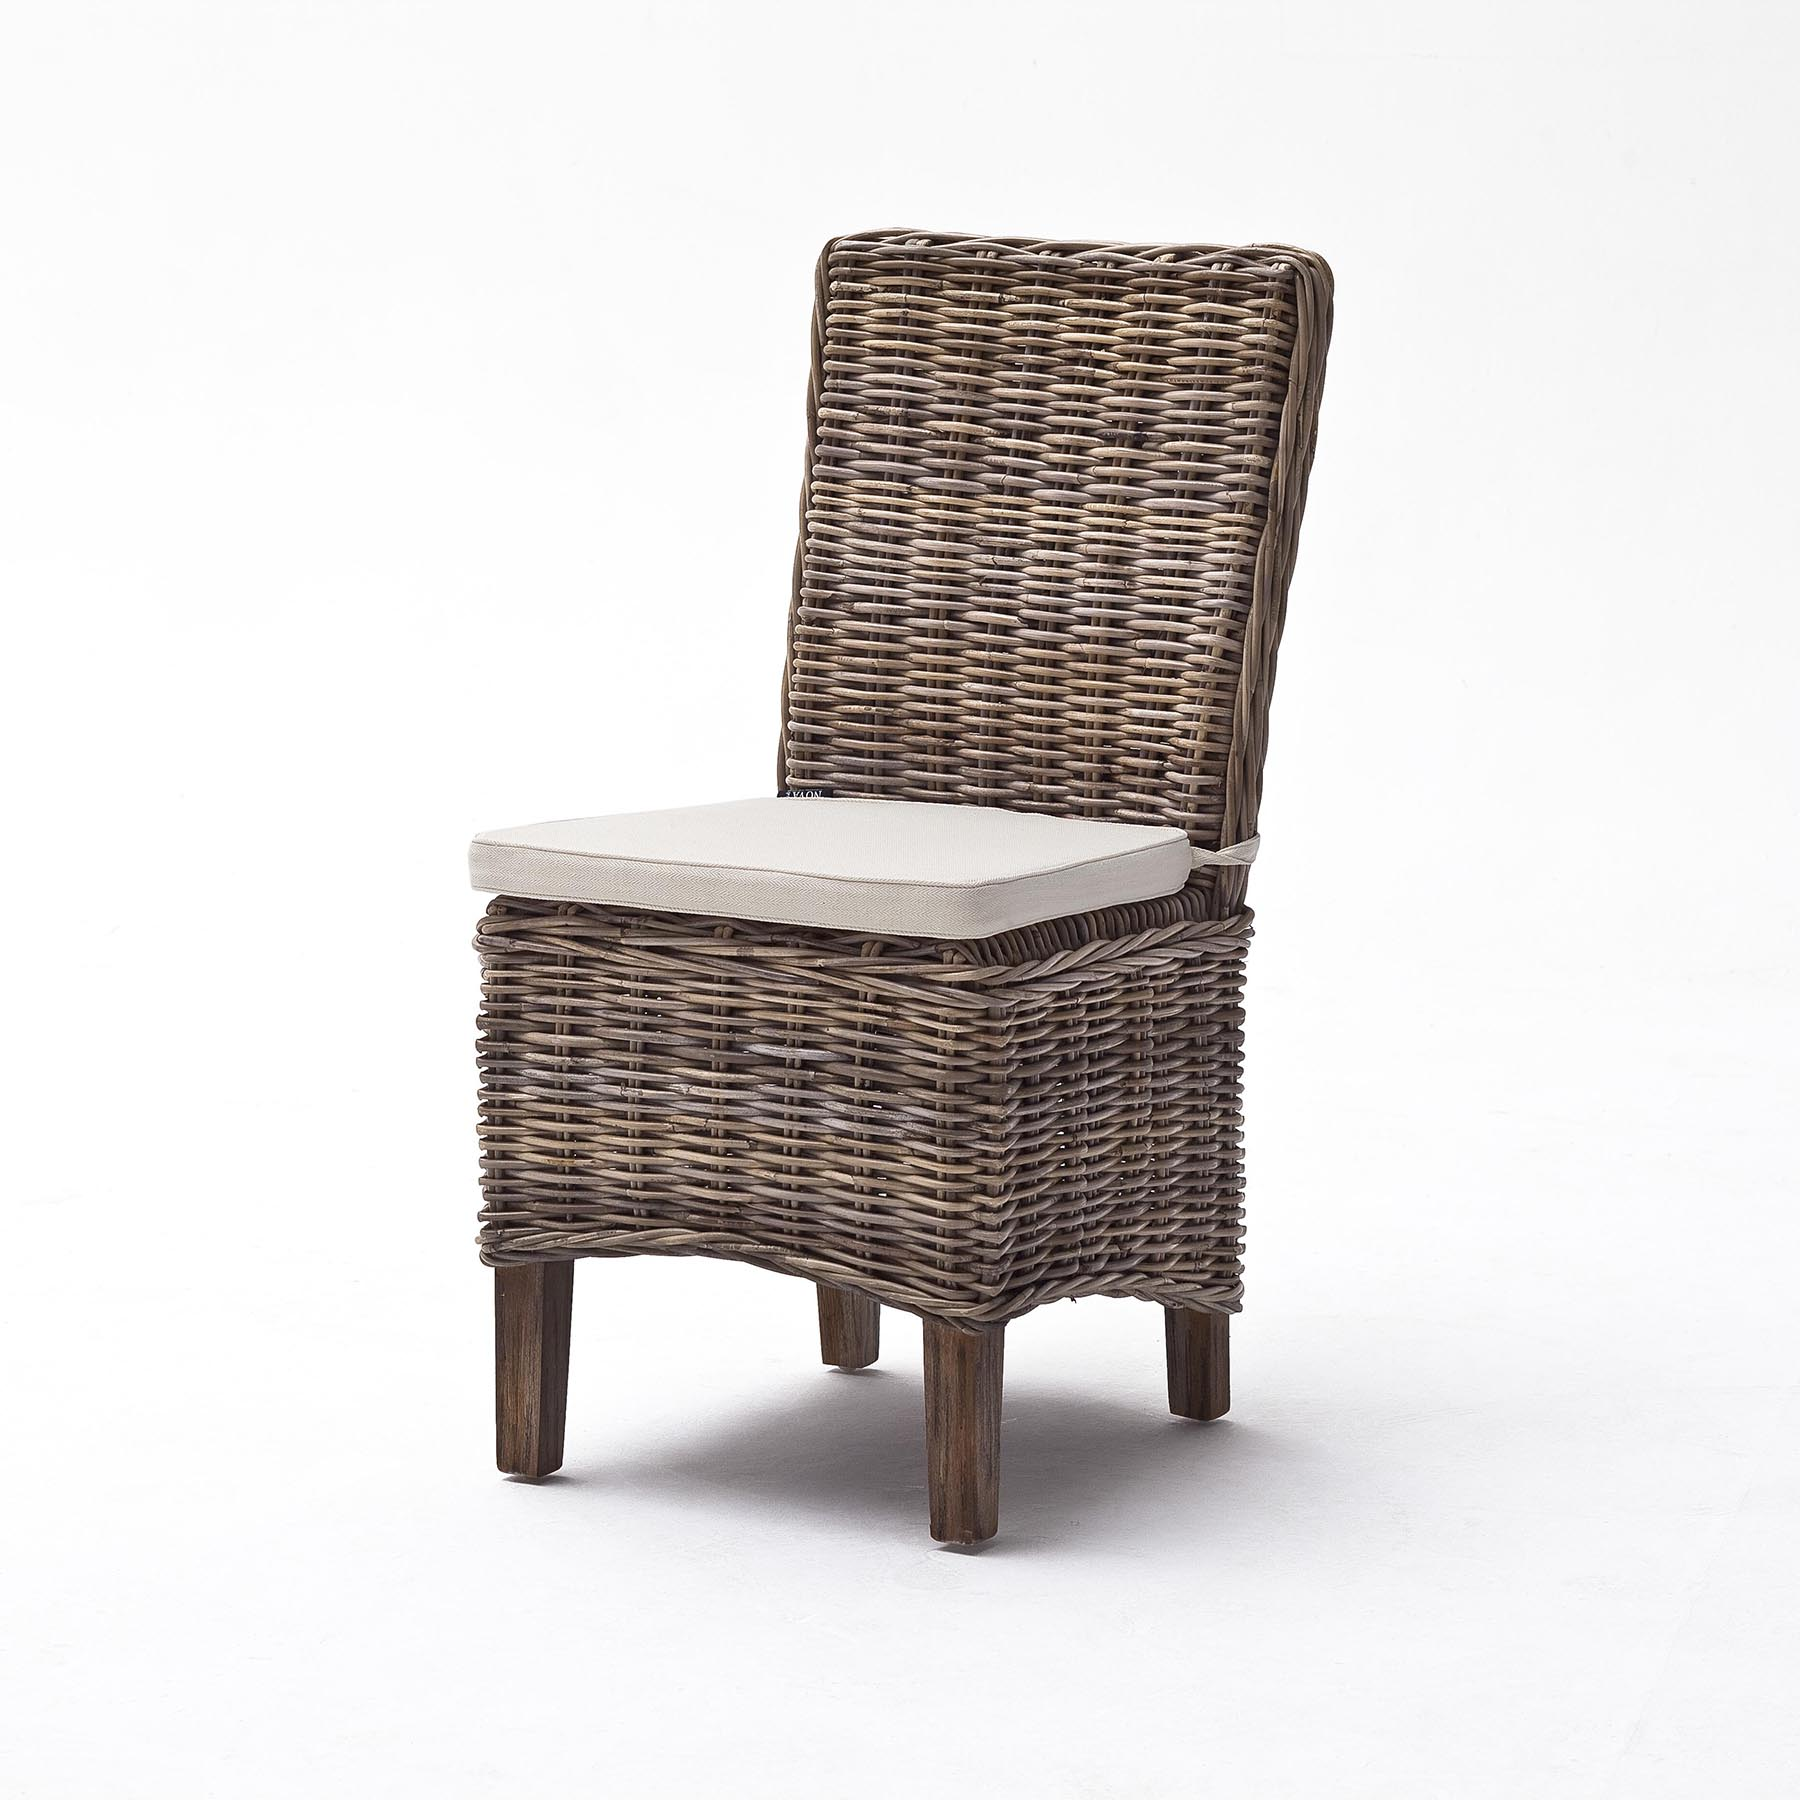 ... Wicker Dining Chair,Rattan Dining Chair,Rattan Armless Dining Chair ...